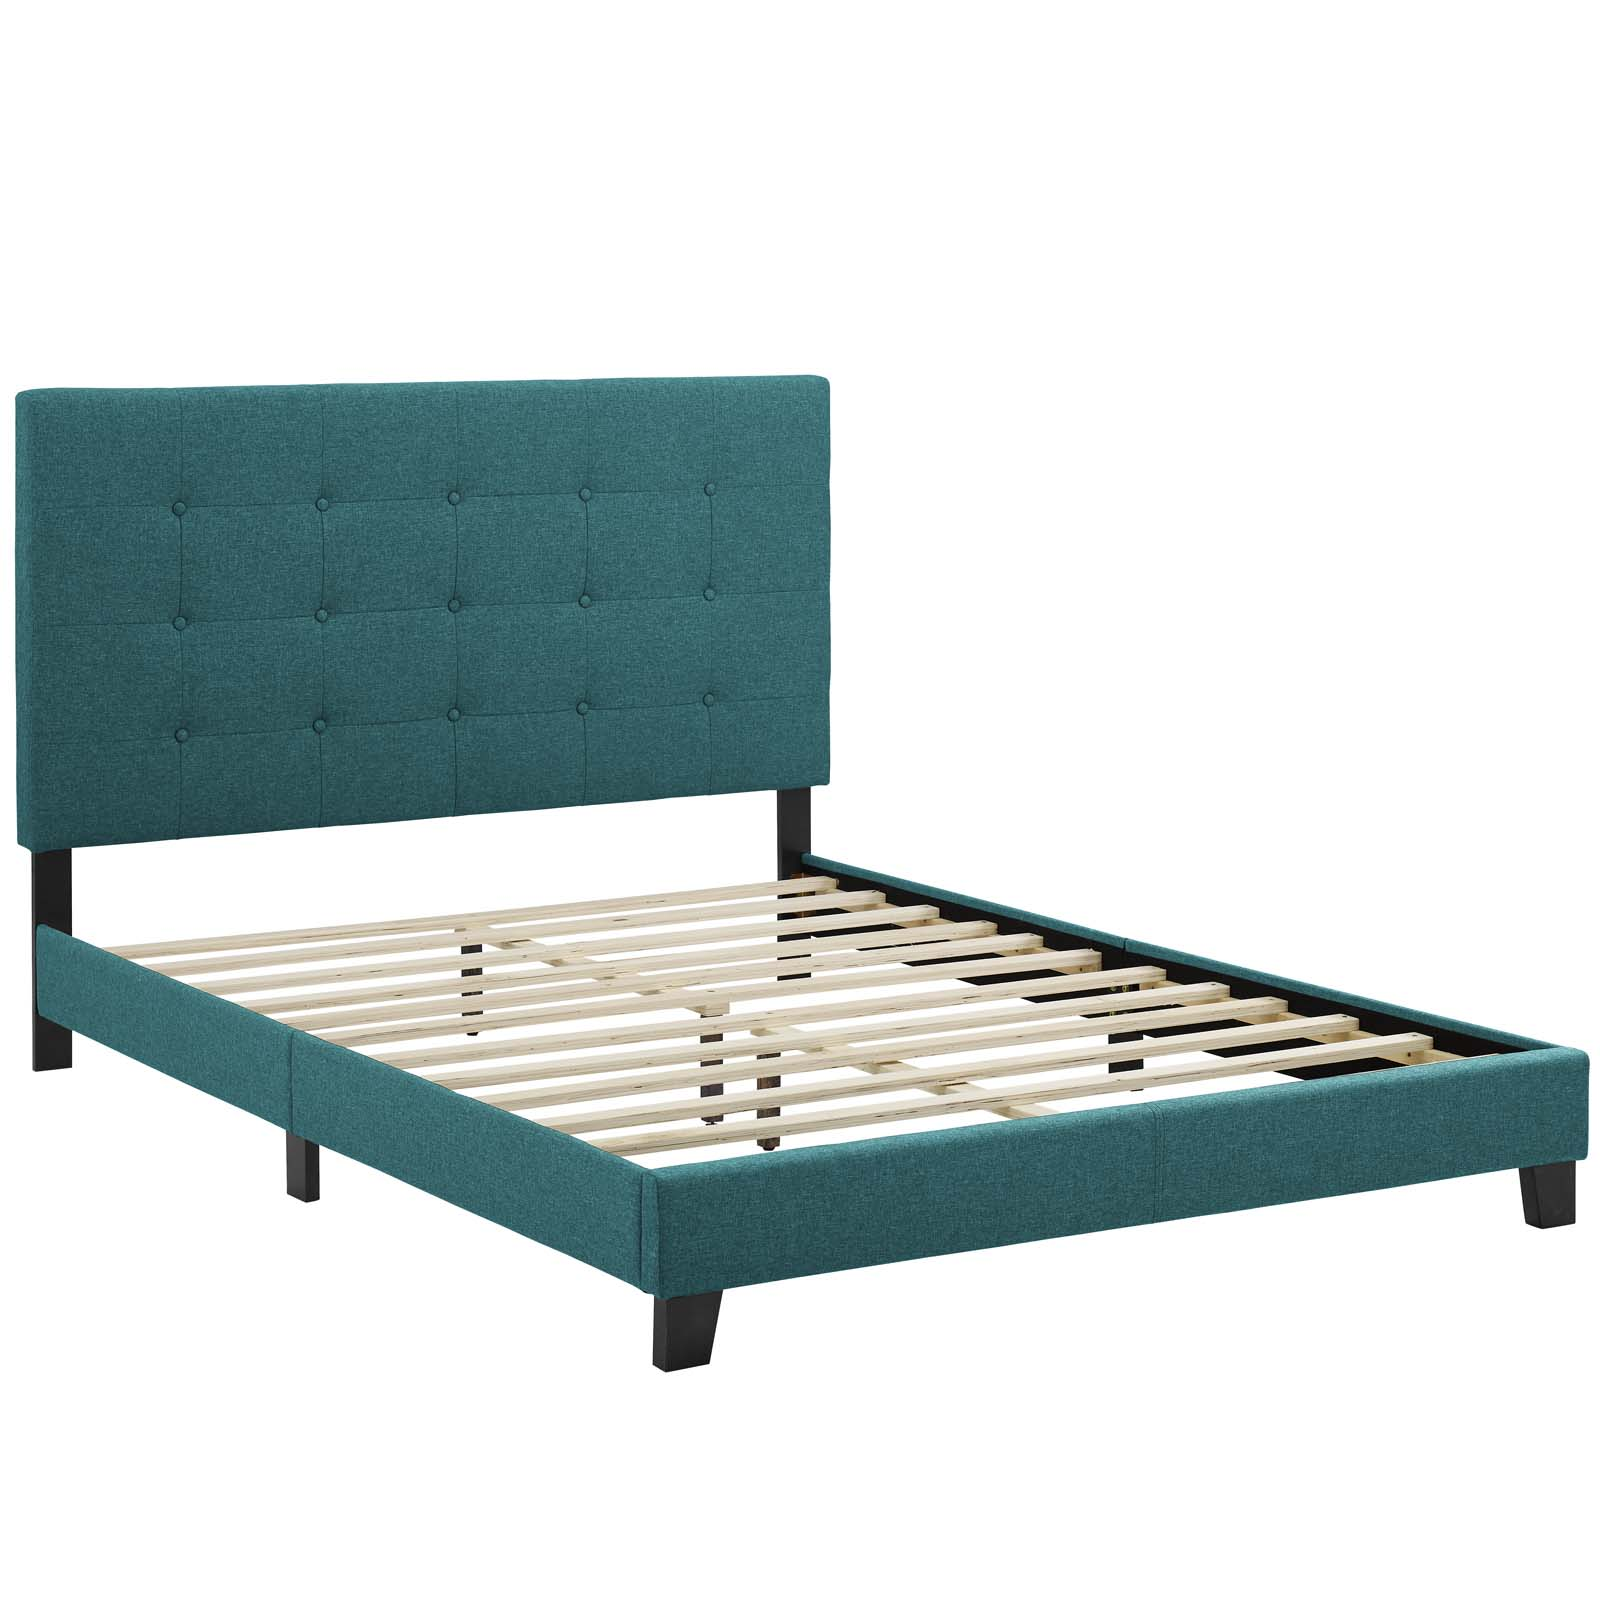 Artie Full Bed (Teal)